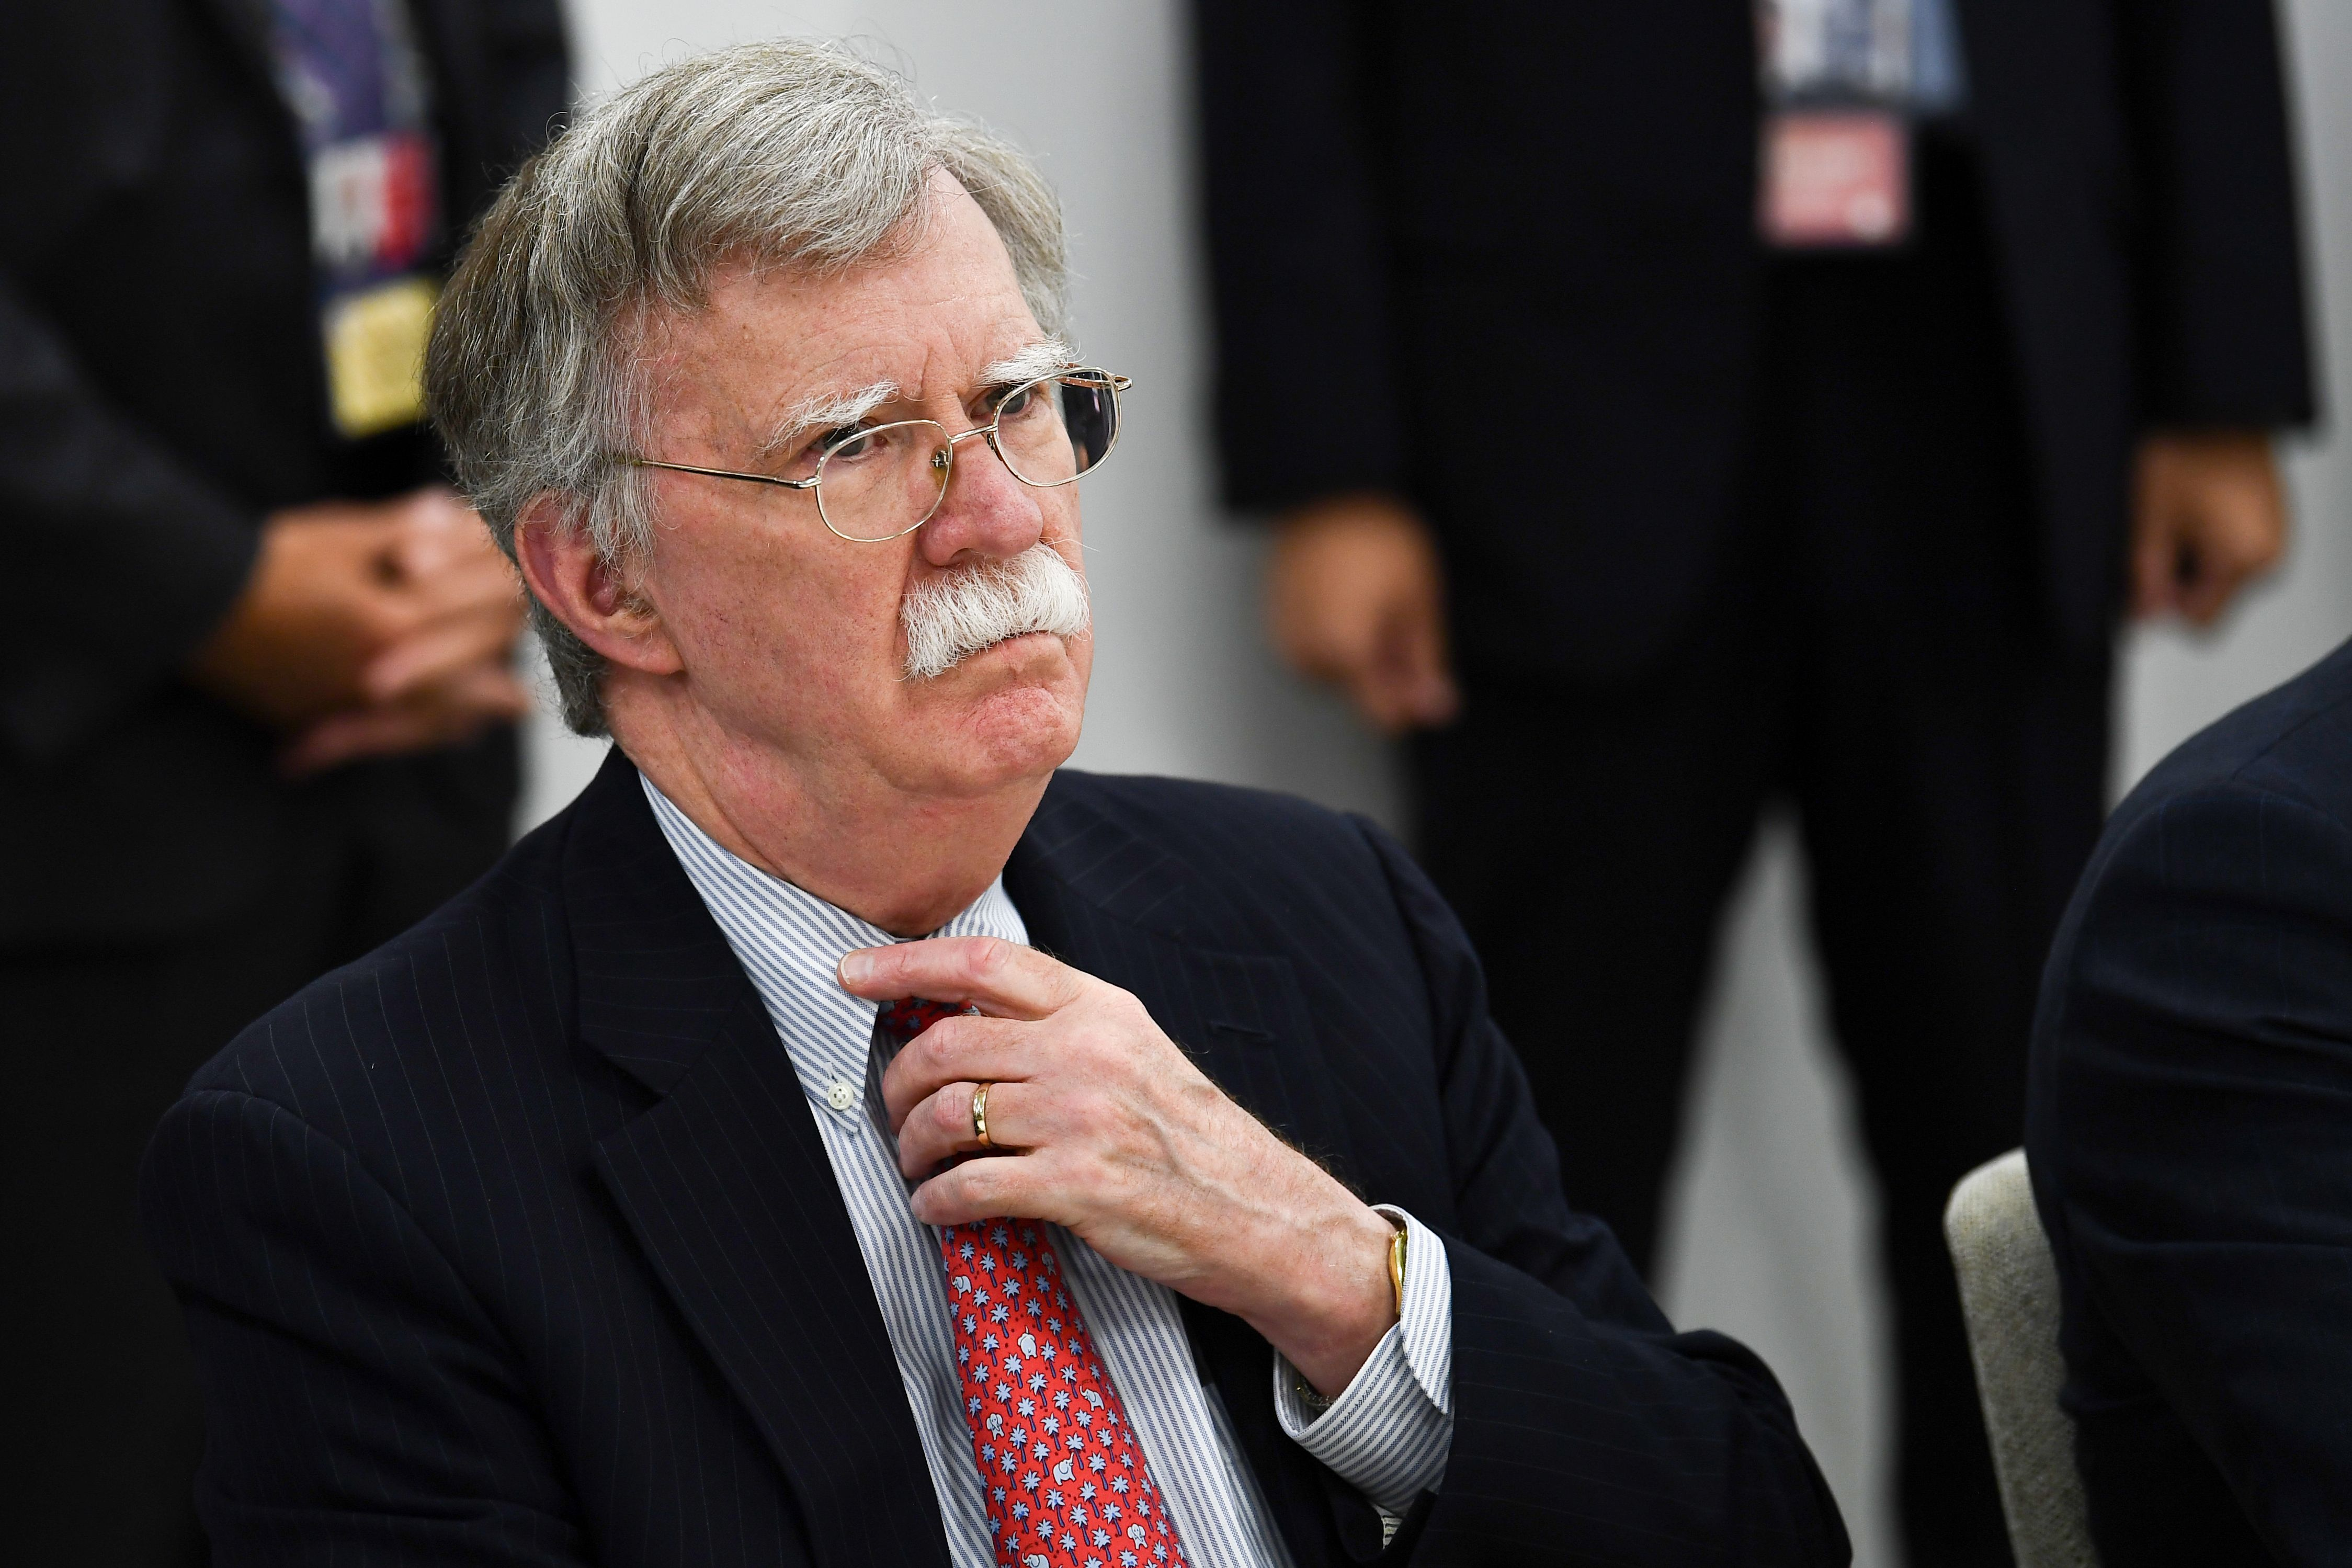 US National Security Advisor John Bolton attends a meeting during the G20 Osaka Summit in Osaka on June 28, 2019. (Photo by Brendan Smialowski / AFP) (Photo credit should read BRENDAN SMIALOWSKI/AFP/Getty Images)